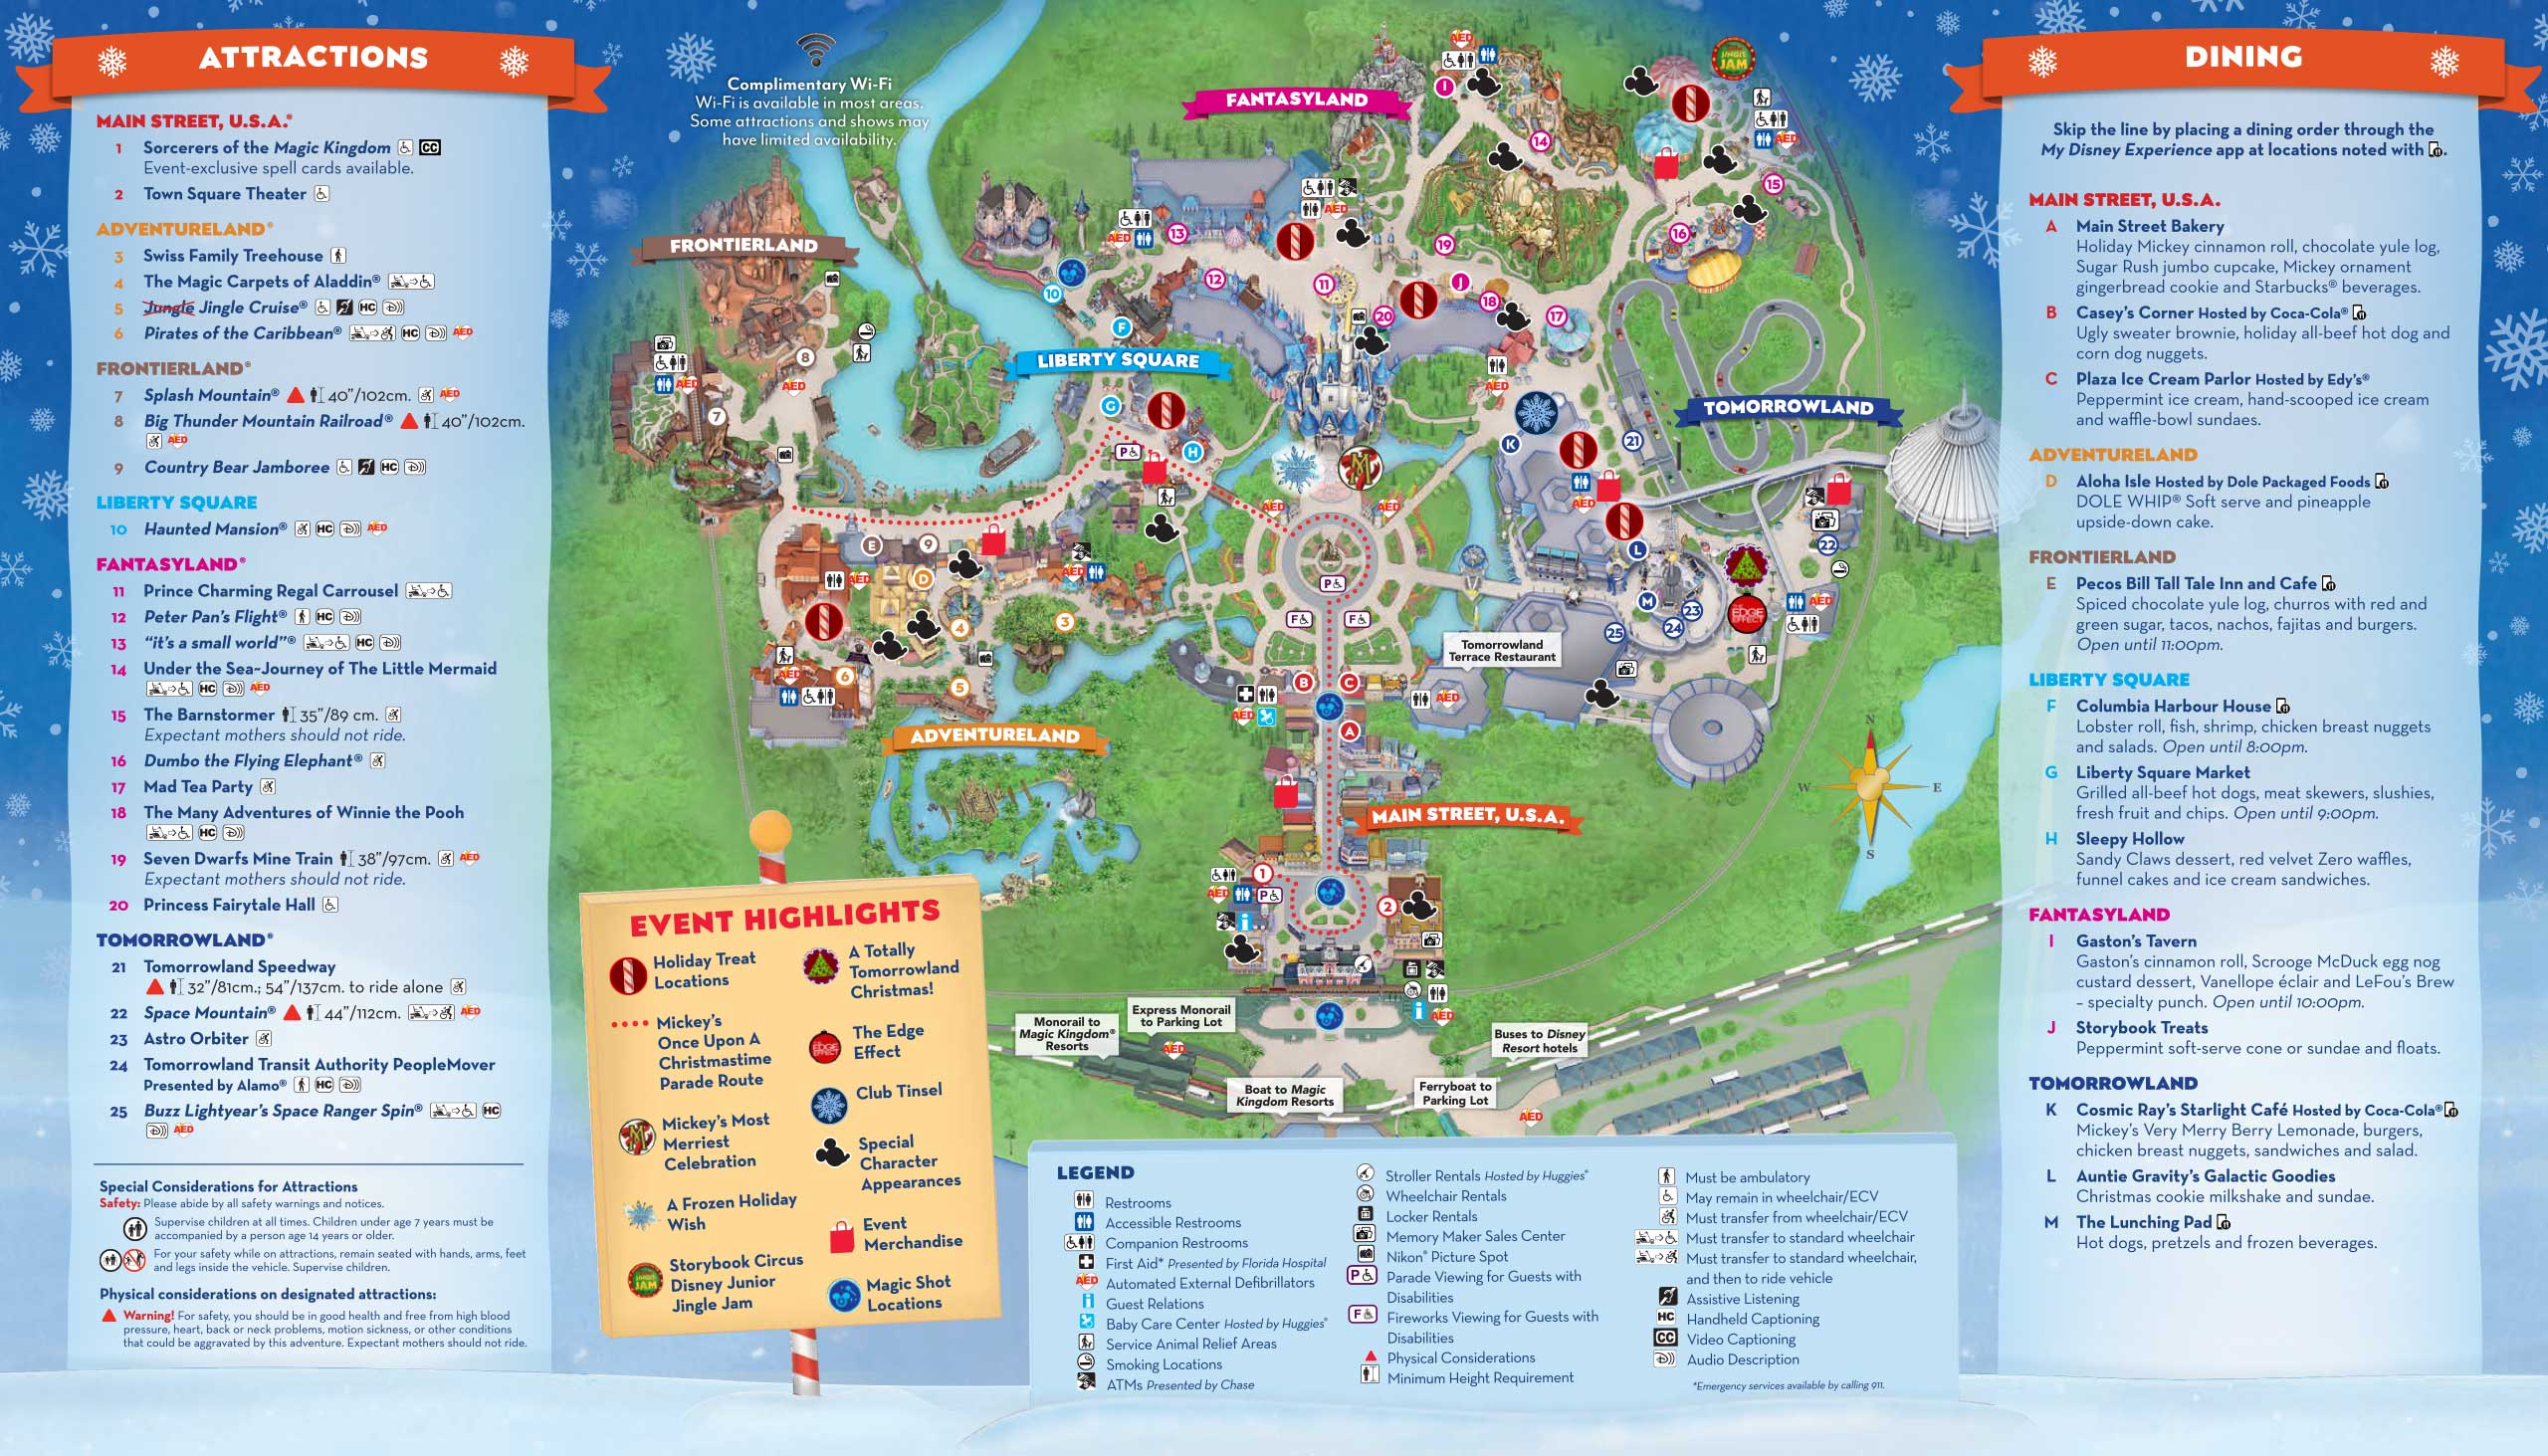 Mickey's Very Merry Christmas Party 2018 guide map - back